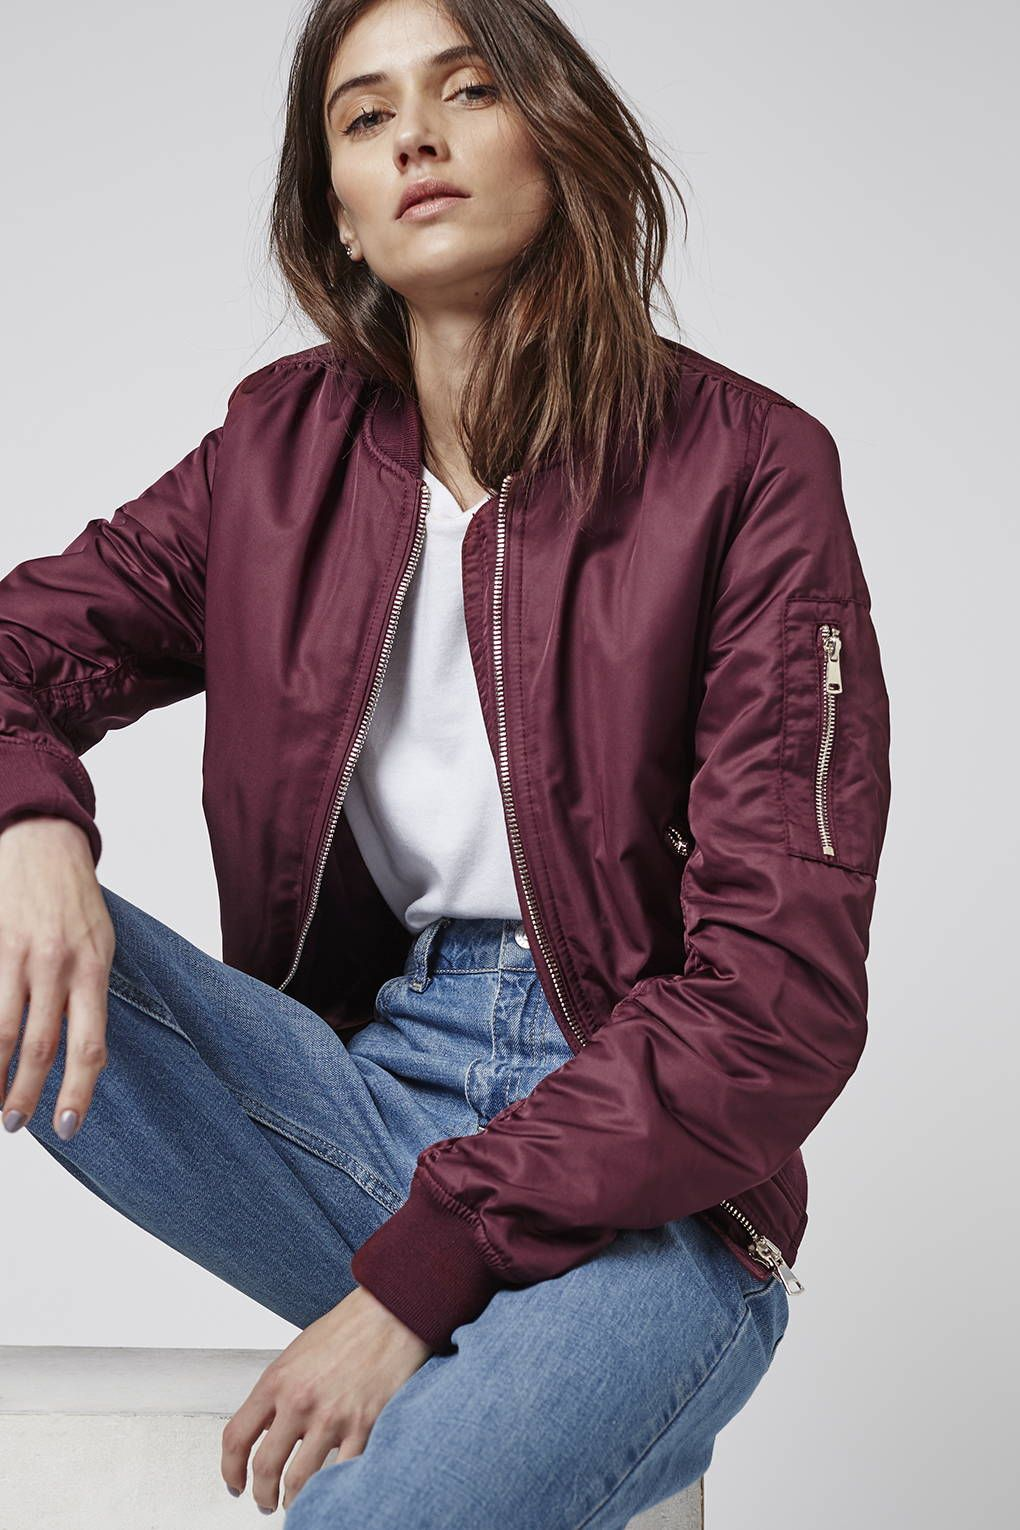 21 Bomber Jackets That Will Give You Change From $100 | Cheap ...